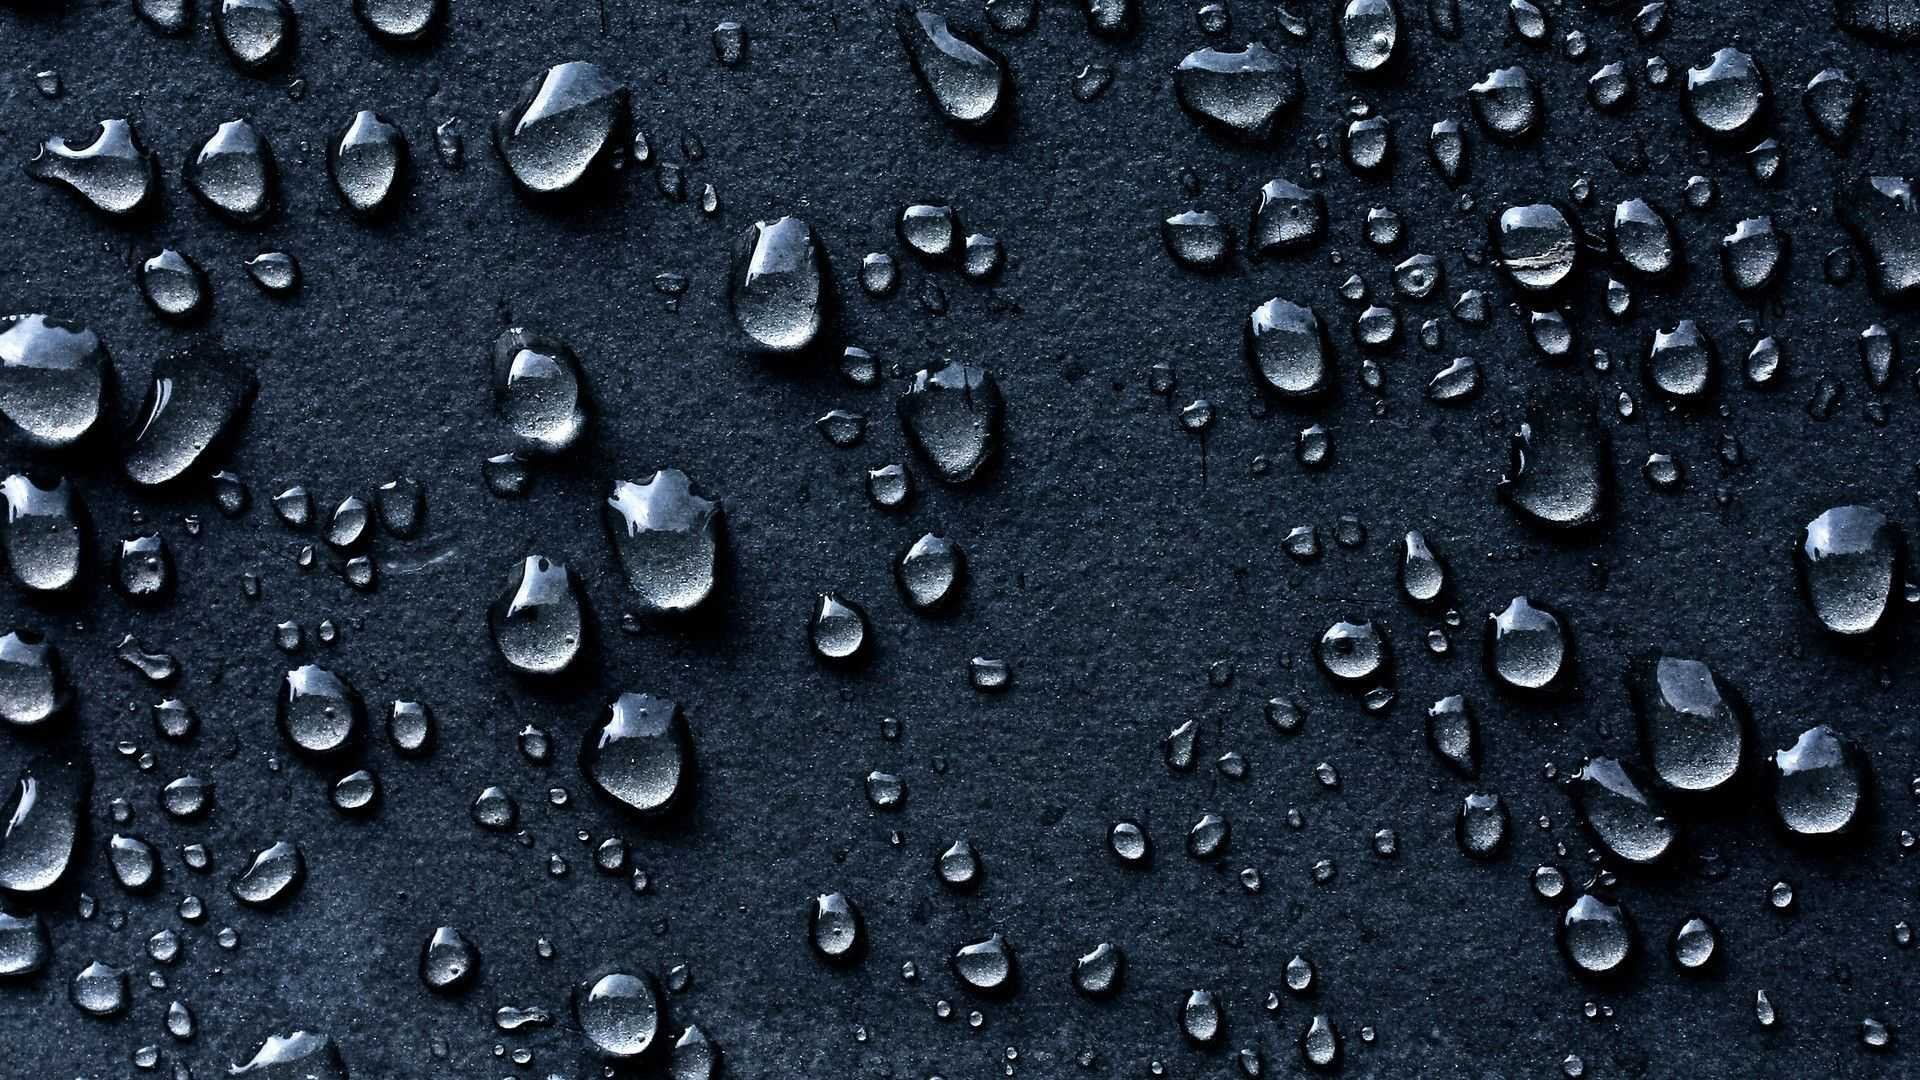 Good Wallpaper Home Screen Rain - 4aa7bc19ec548accd1653179bf7267d9  2018_26964.jpg